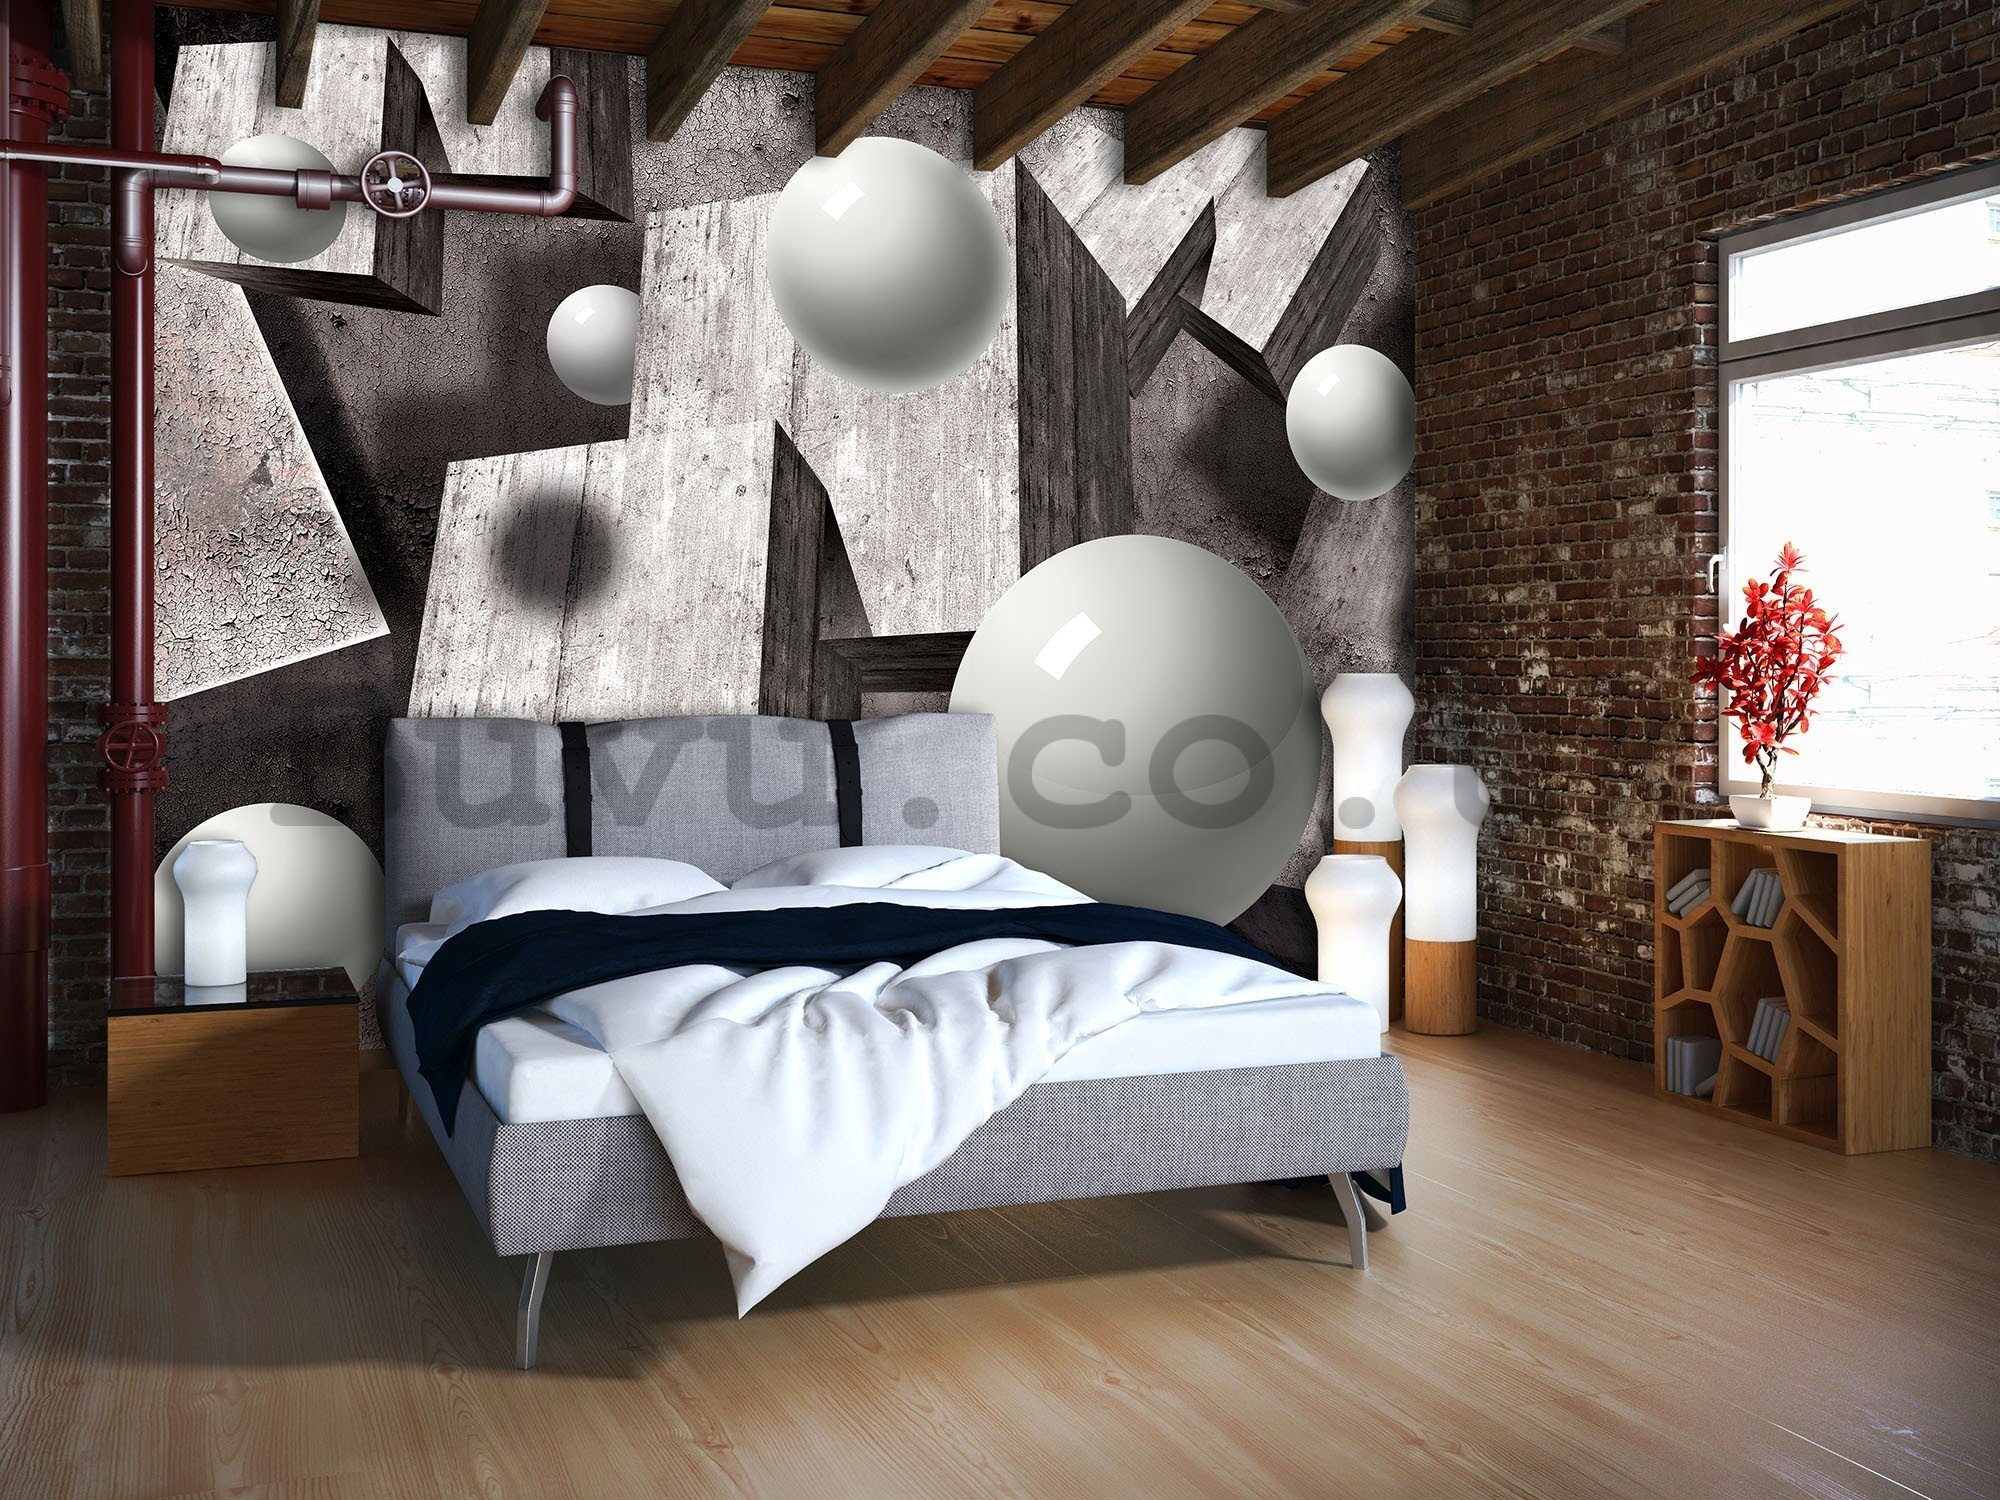 Wall mural vlies: Spheres and cubes - 416x254 cm